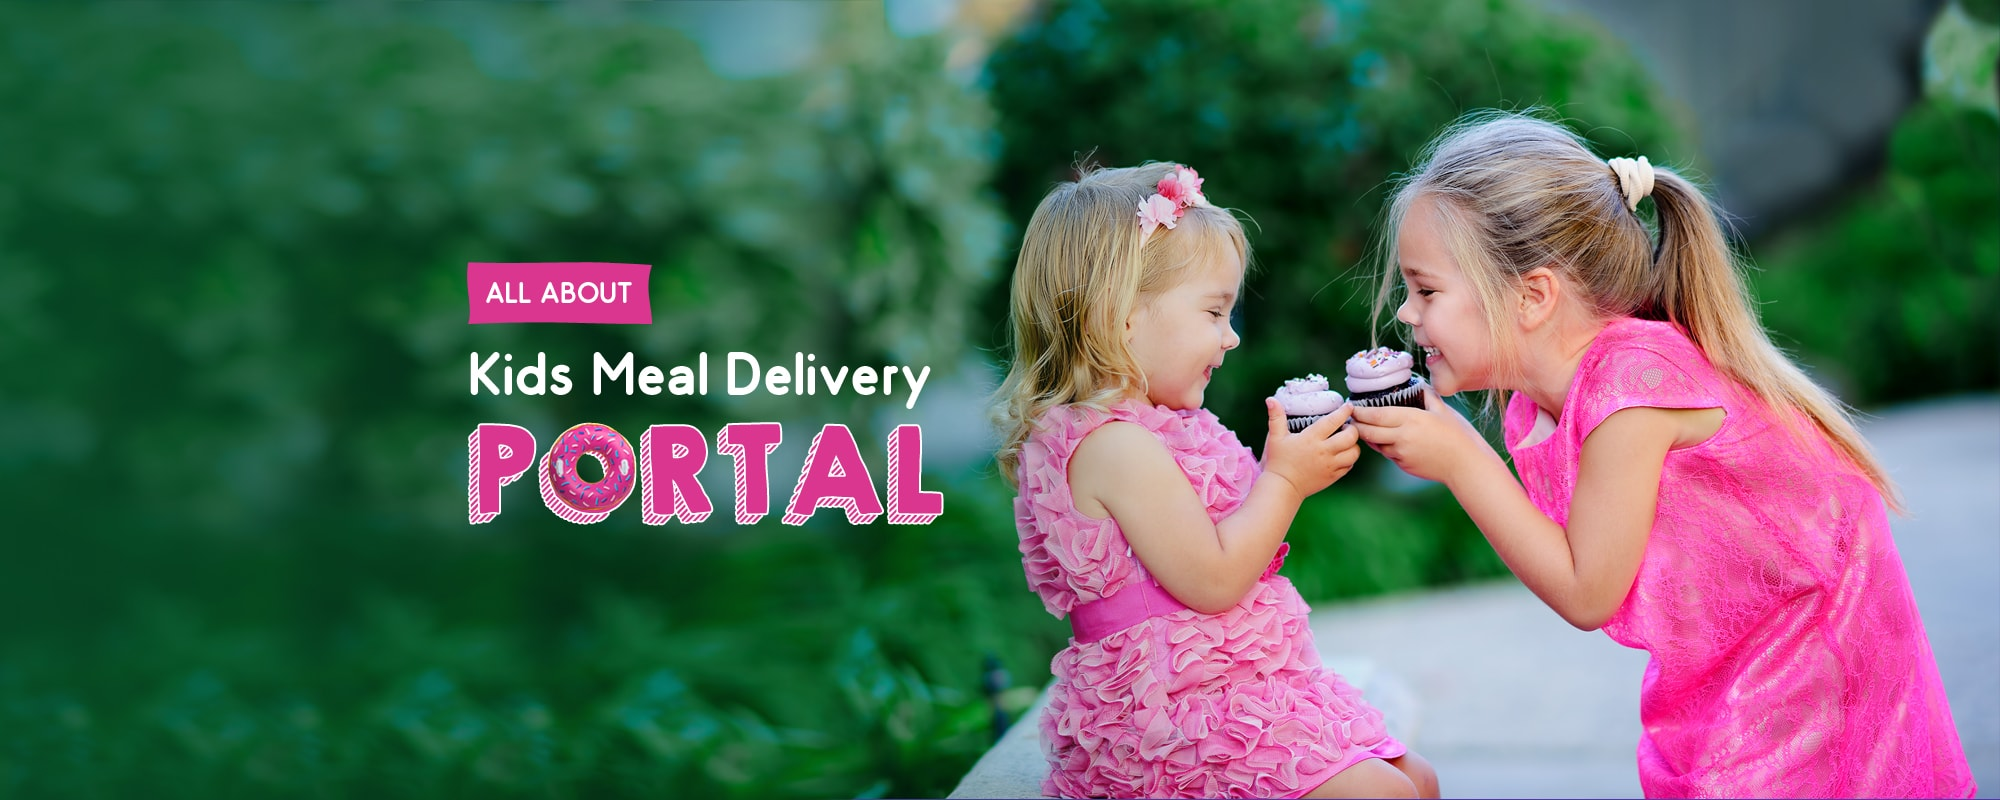 Be a Part of the Food industry: Launch an Online Meal Delivery for Kids' Website